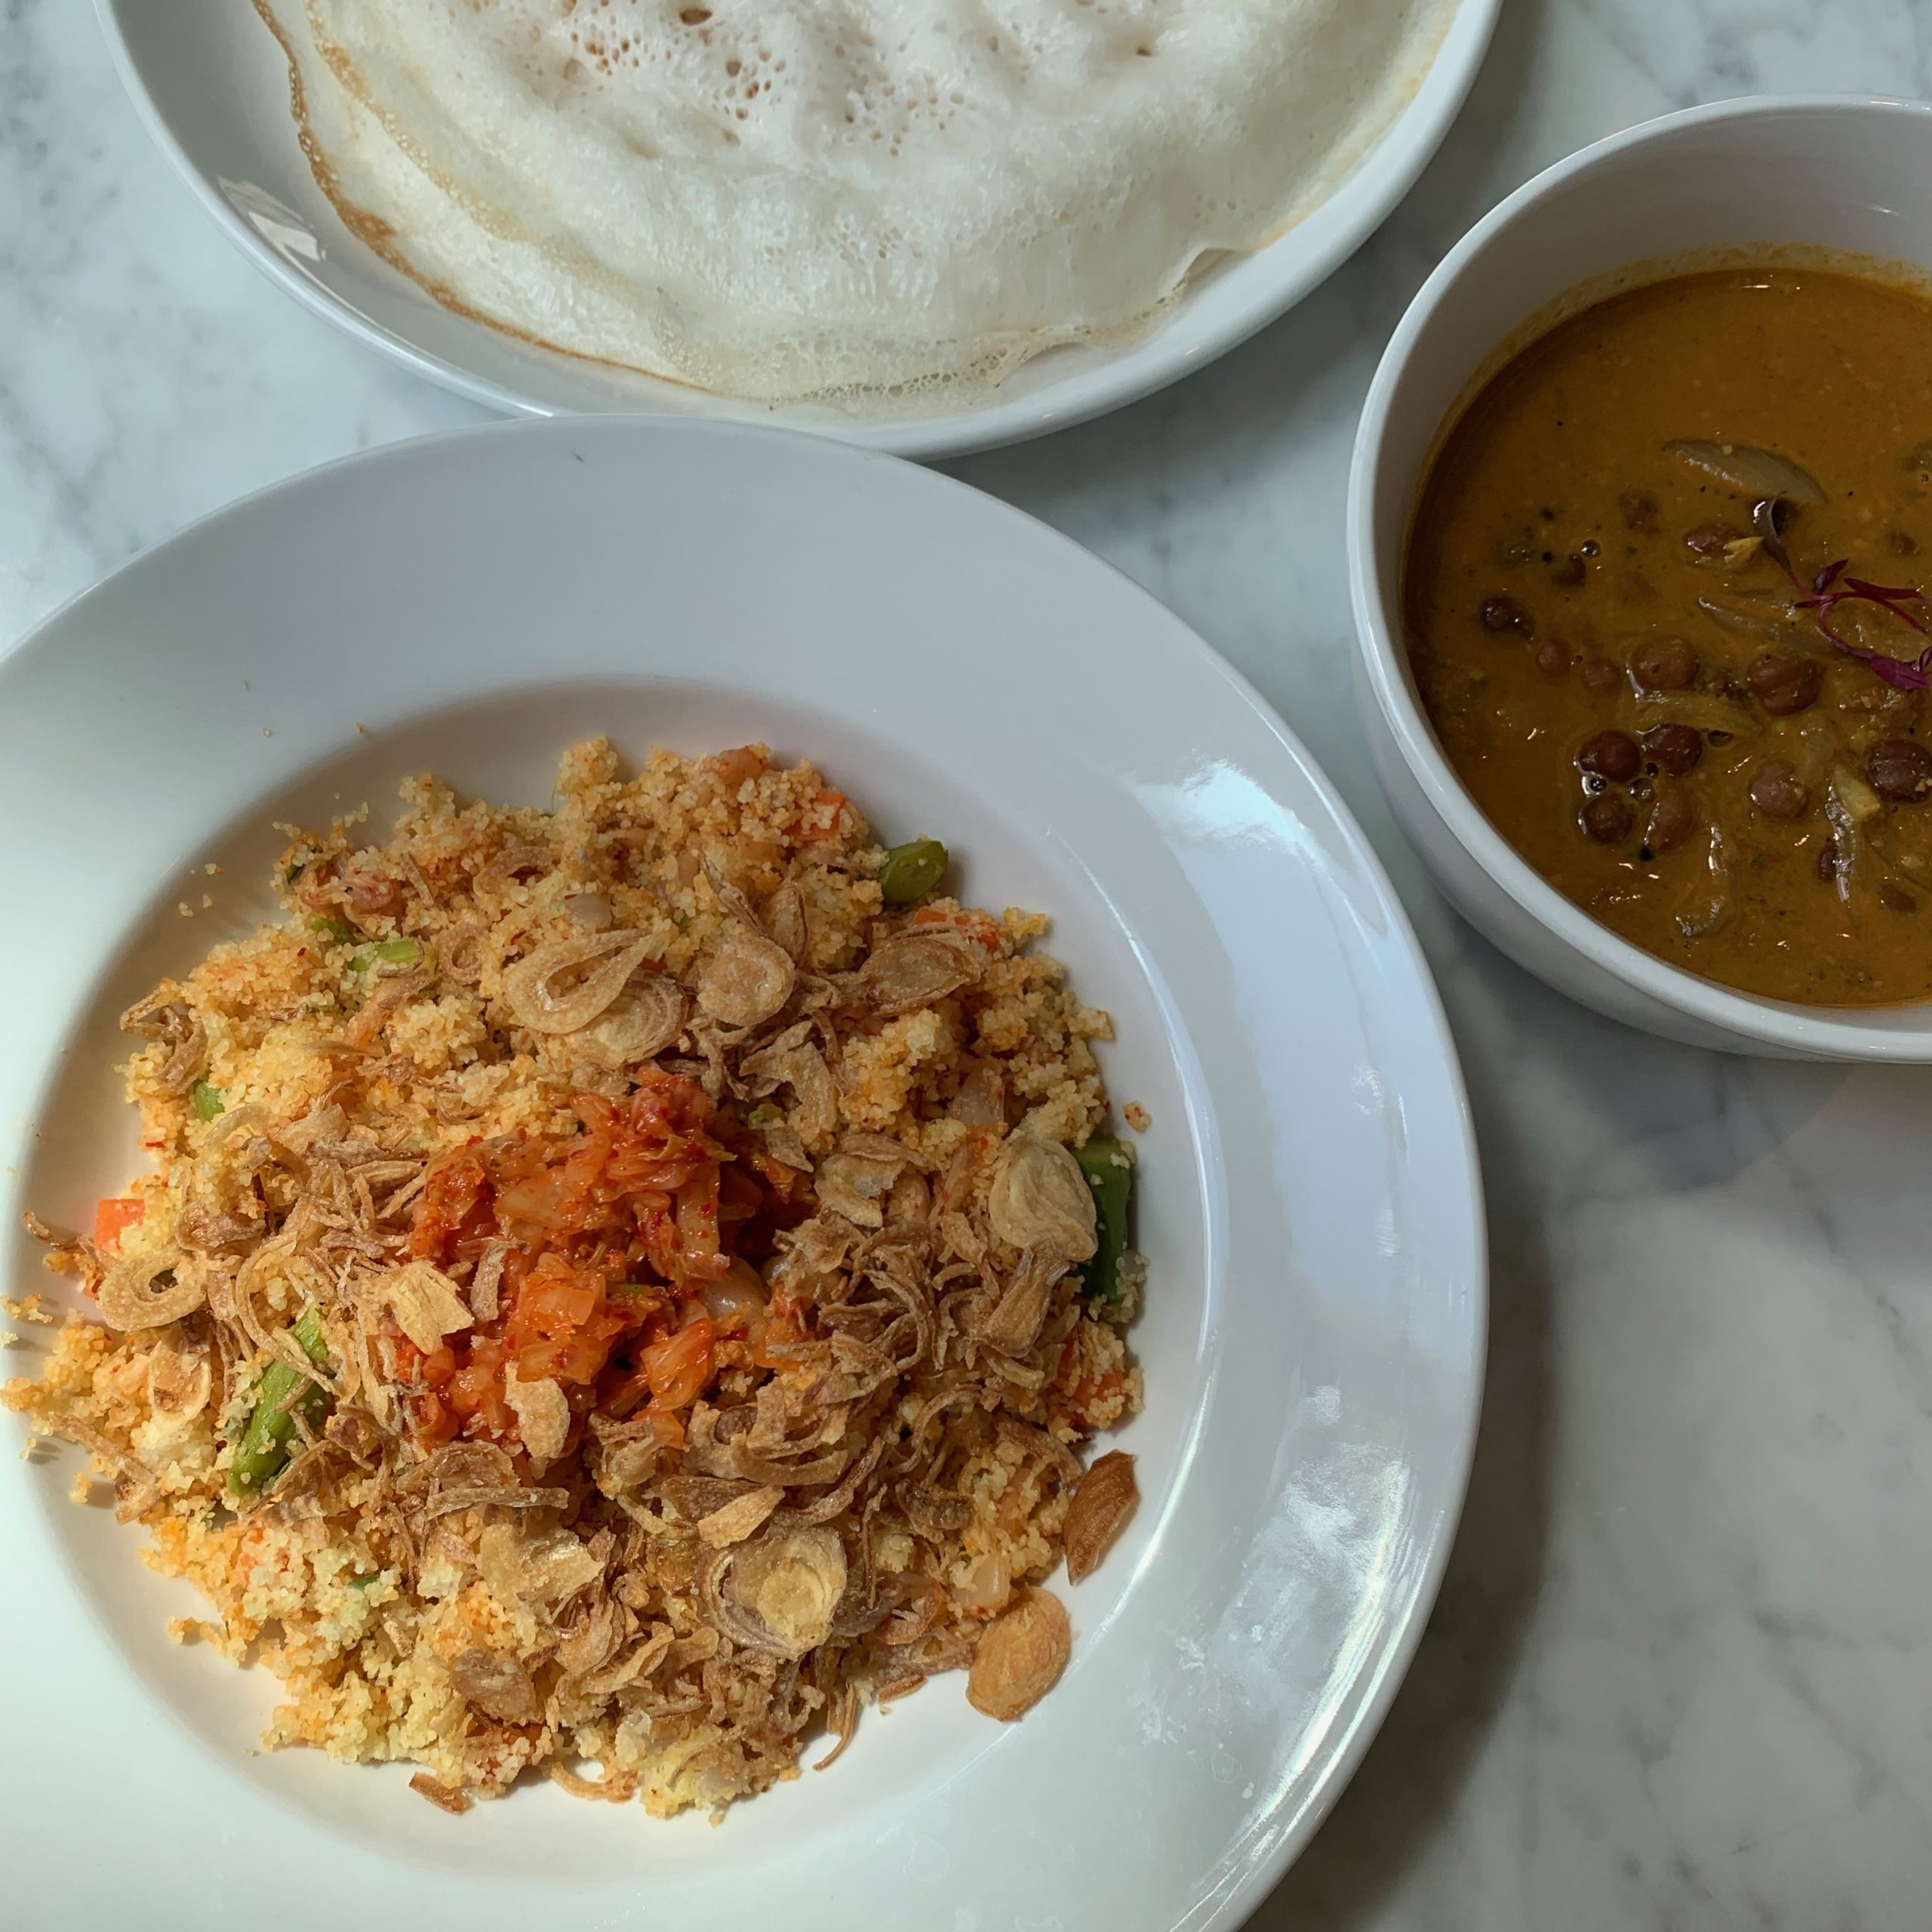 (counterclockwise from bottom) Kimchi upma, kadala curry, and <i>appam</i>, crepes made with fermented rice flour and coconut milk